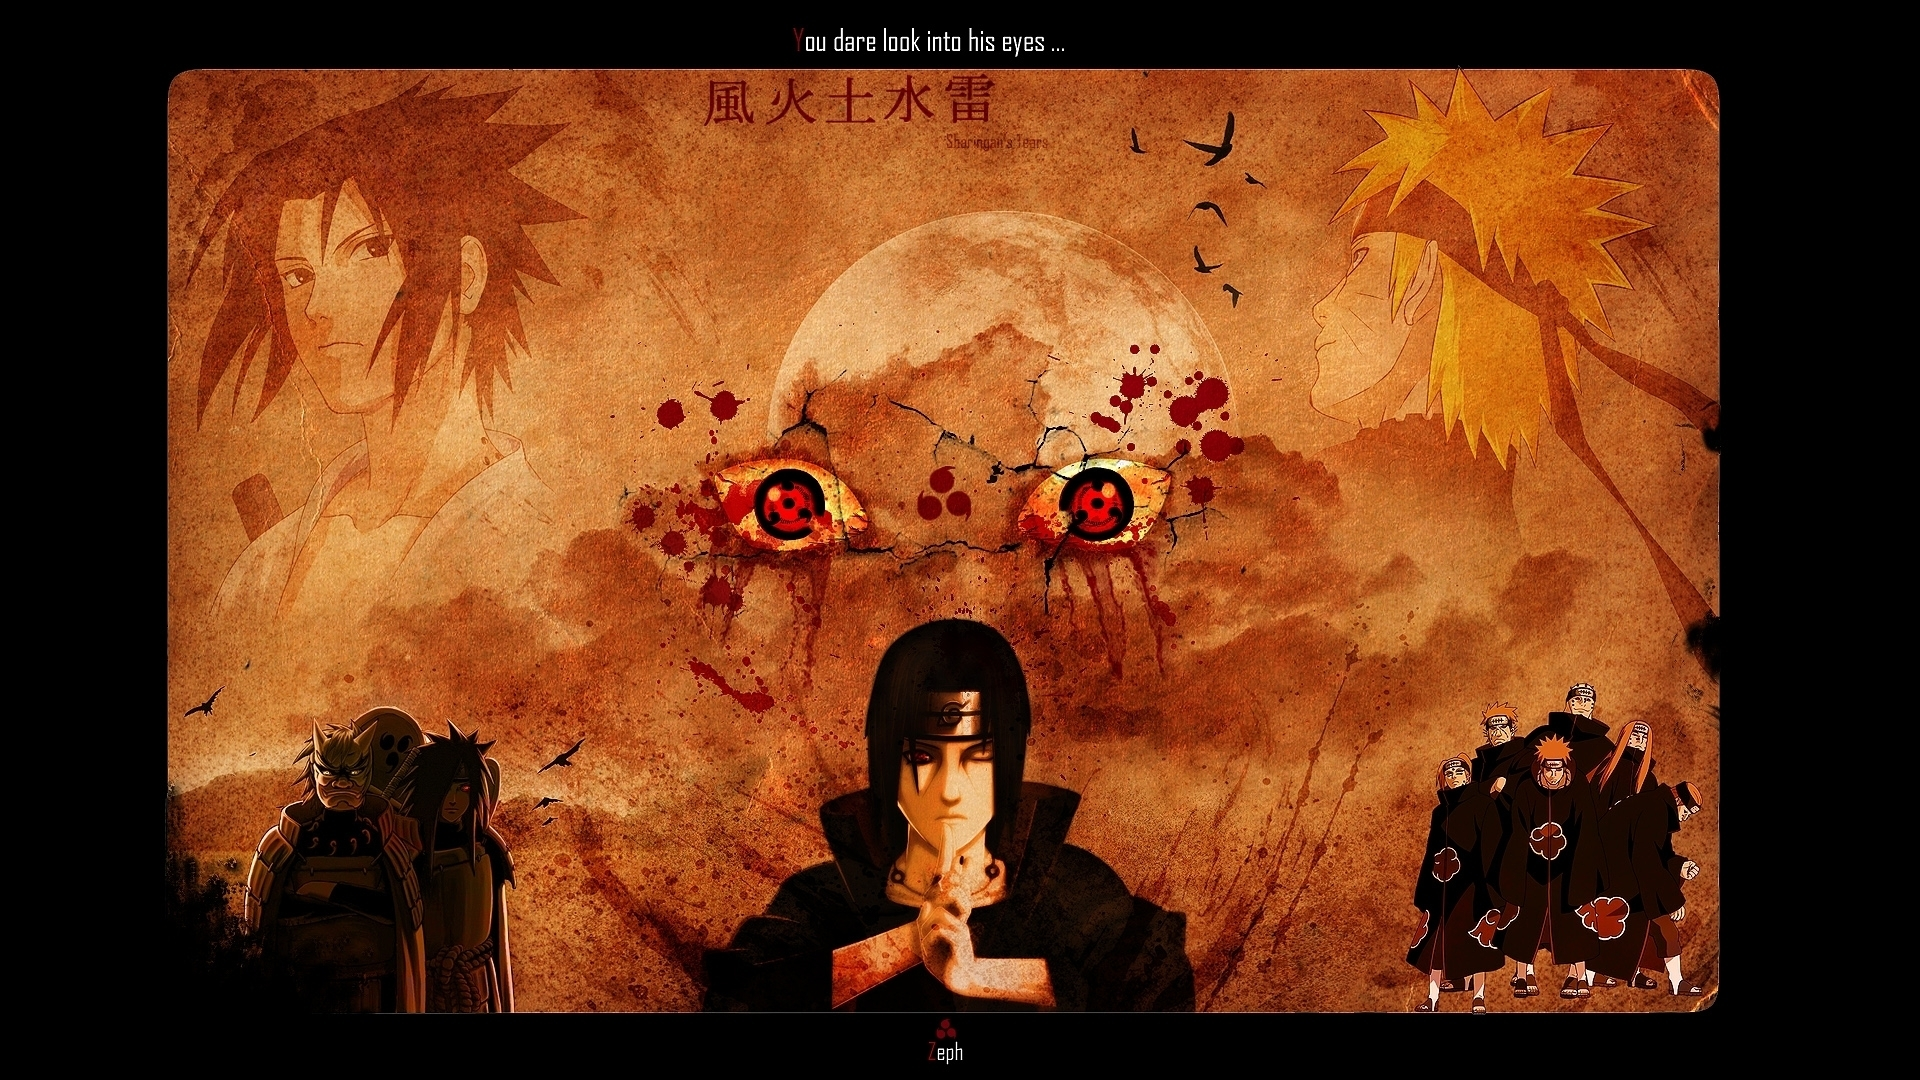 itachi sharingan you dare look into his eyes hd